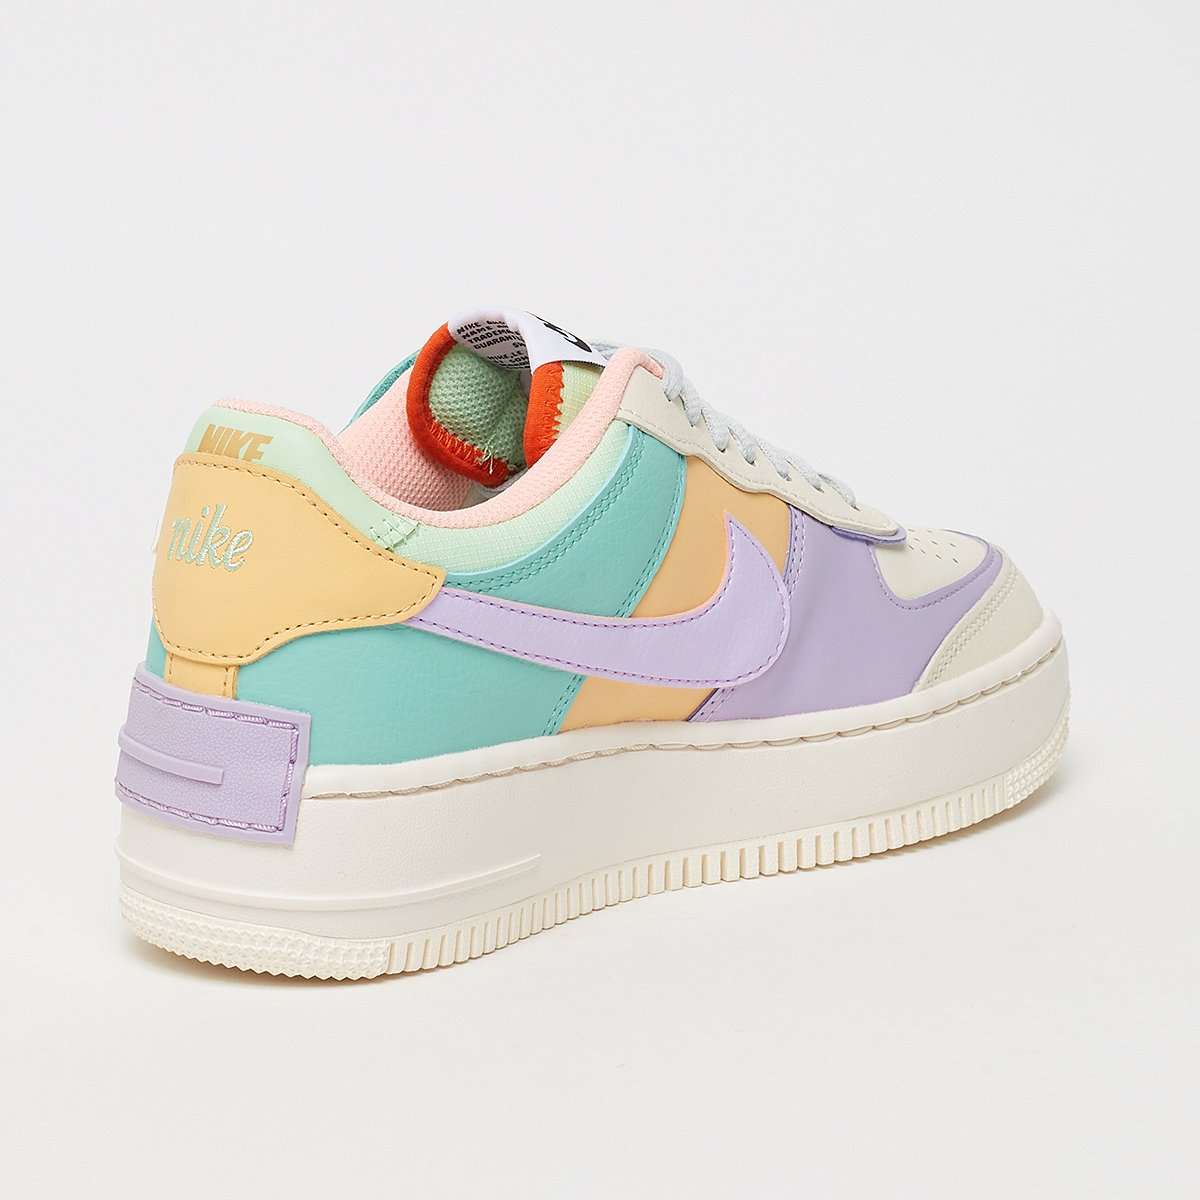 Nike Wmns Air Force 1 Shadow in bunt CI0919 101 | everysize